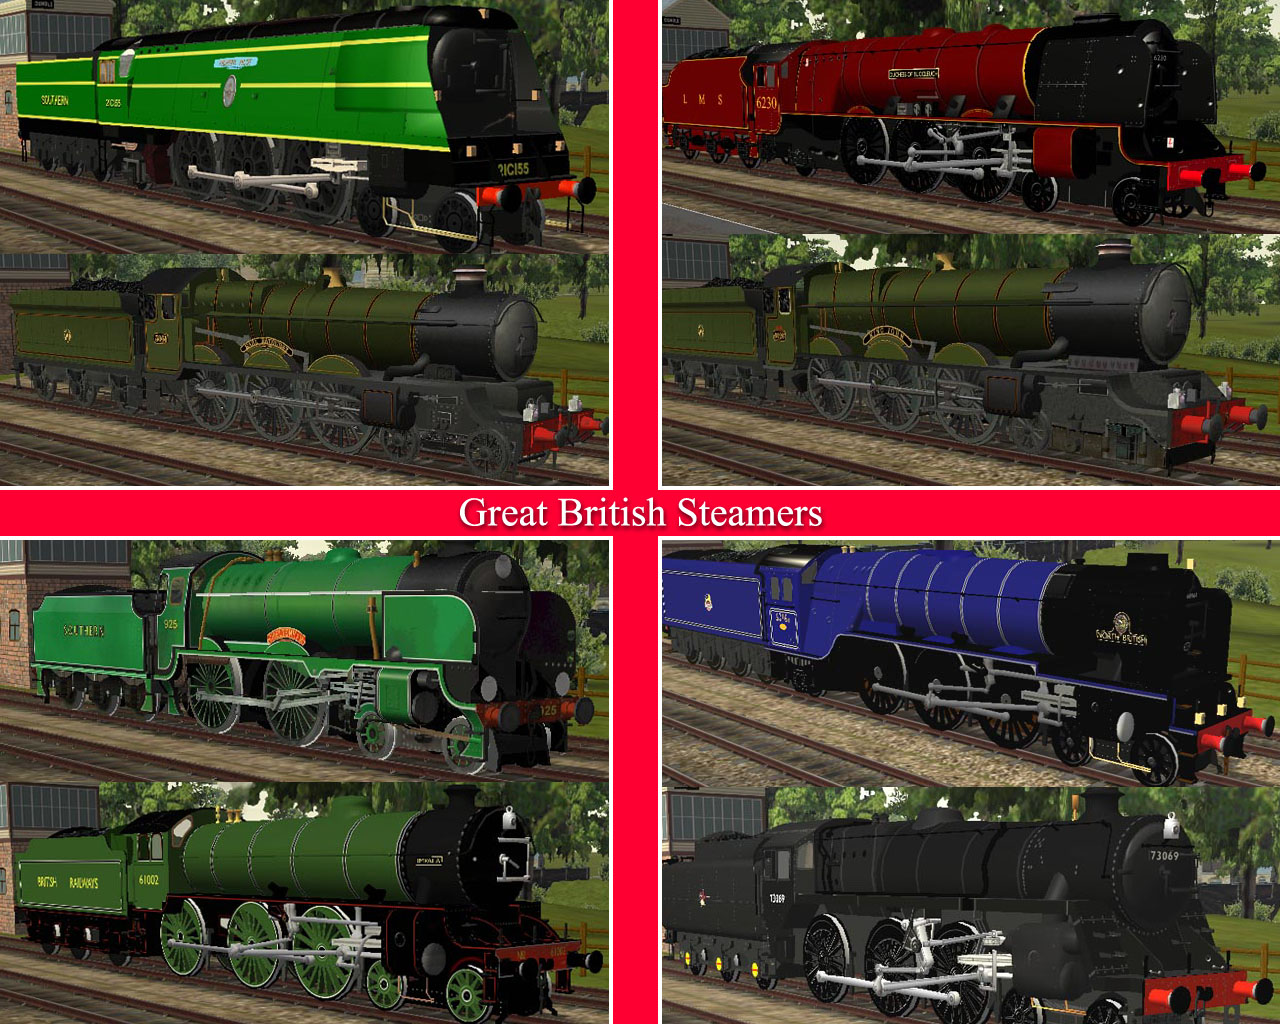 HERITAGE COLLECTION - GREAT BRITISH STEAM LOCOS